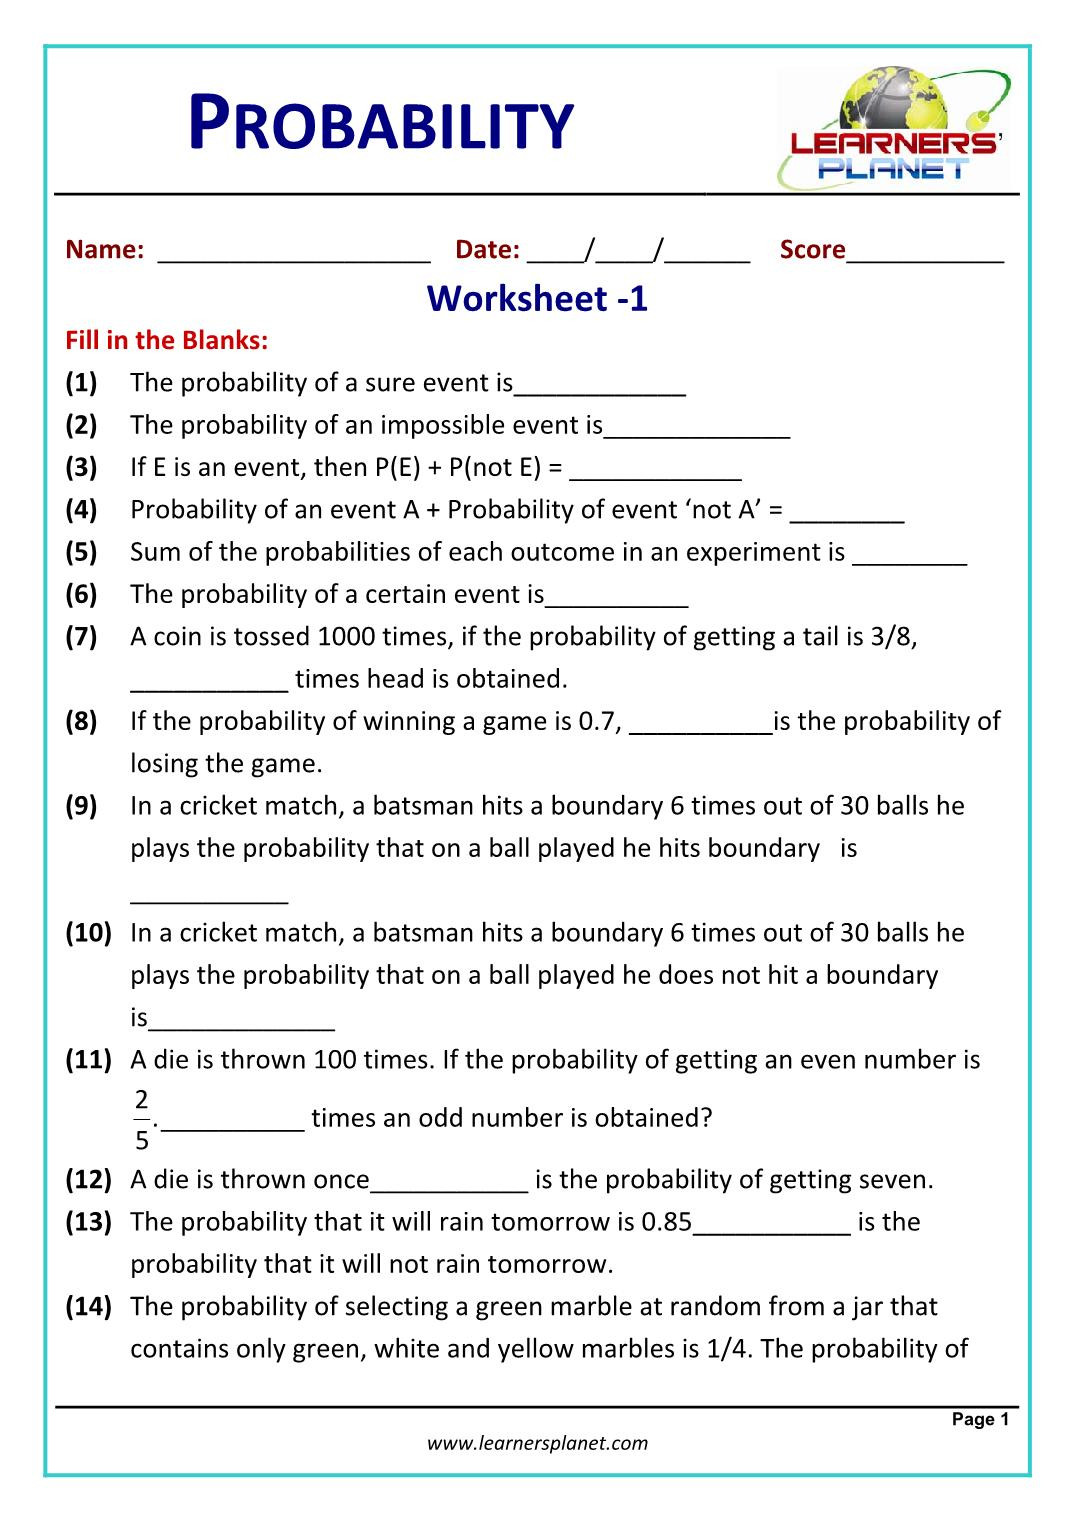 Reflection Math Worksheets Printable Probability Worksheets Math Grade with Answers